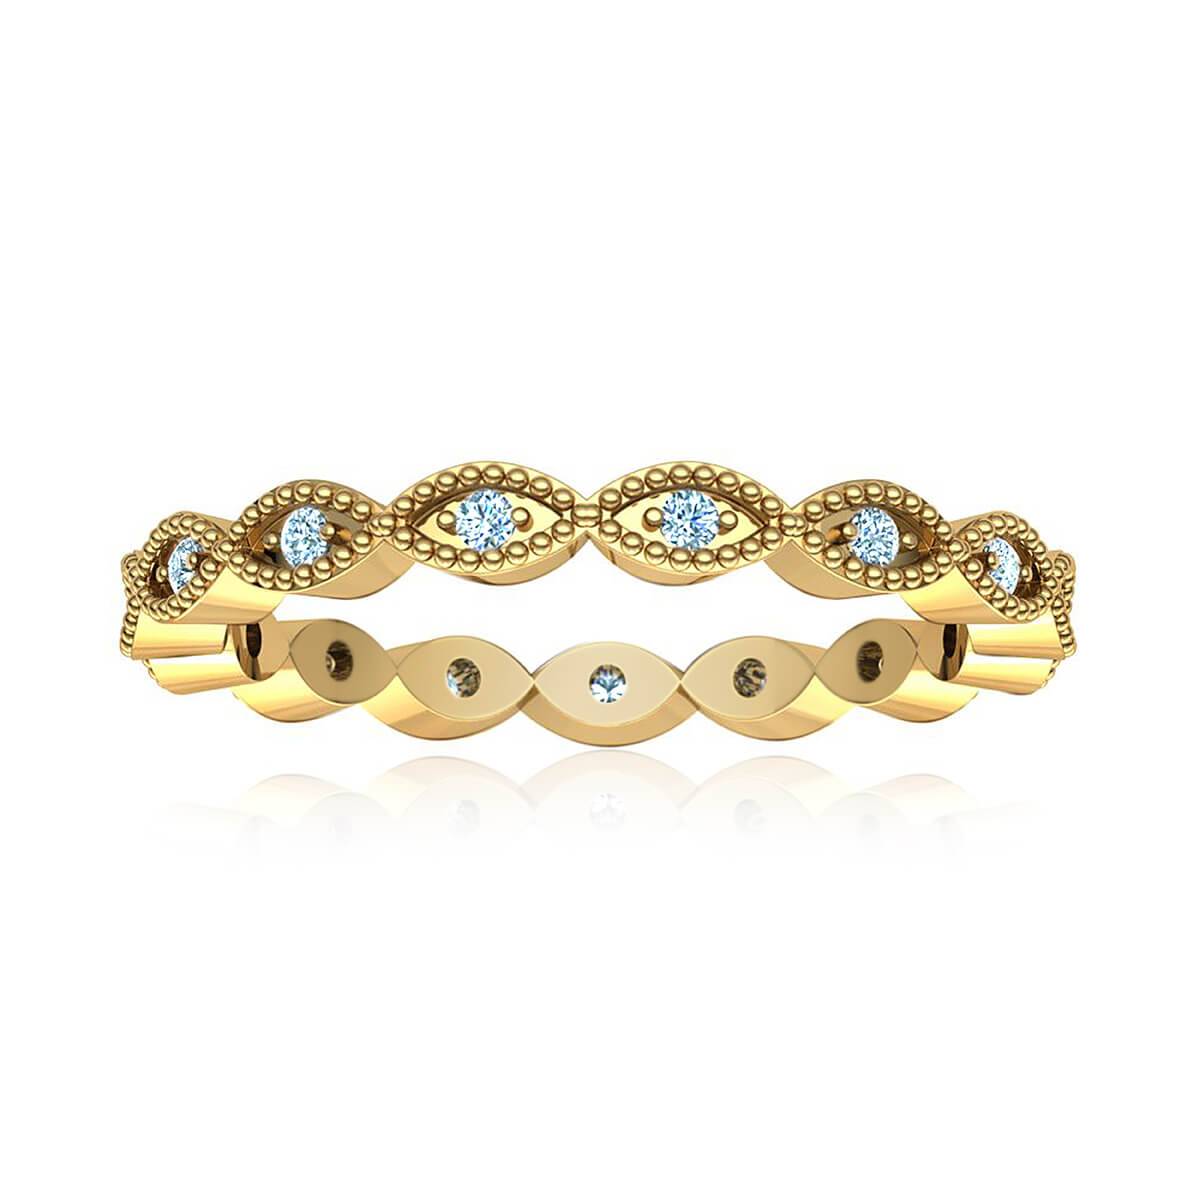 Empress Eternity Diamond Ring (1/4 CT. TW.)